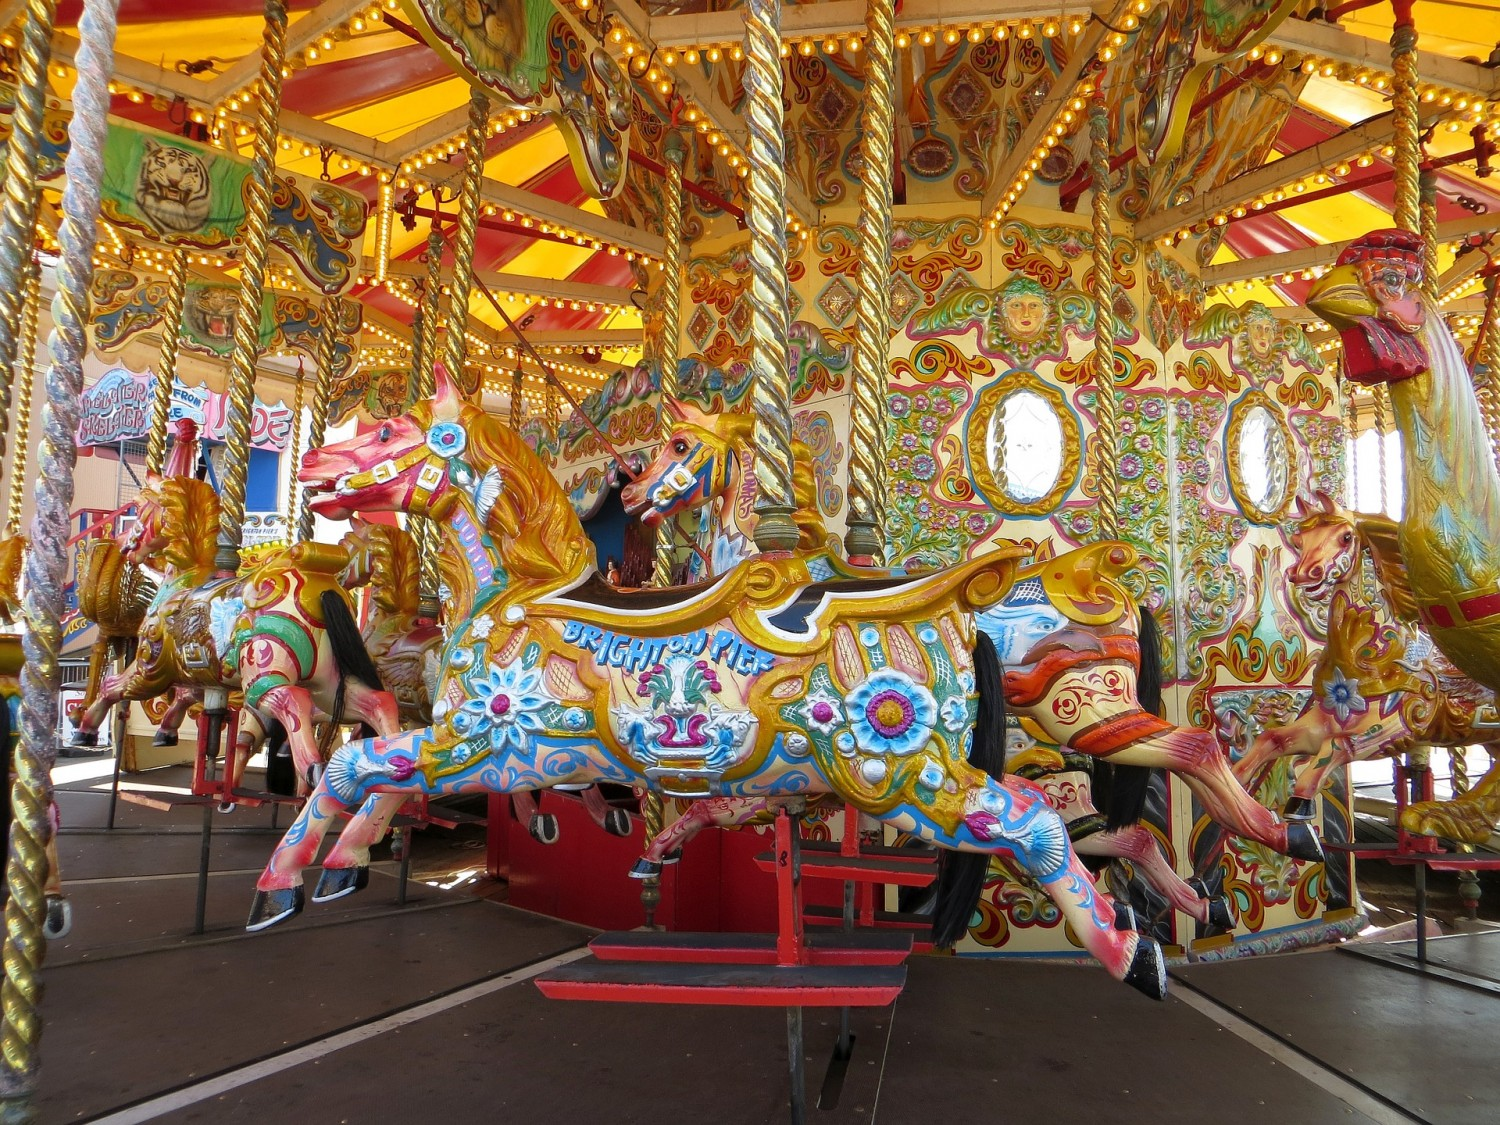 Merry Go Round on Brighton Pier